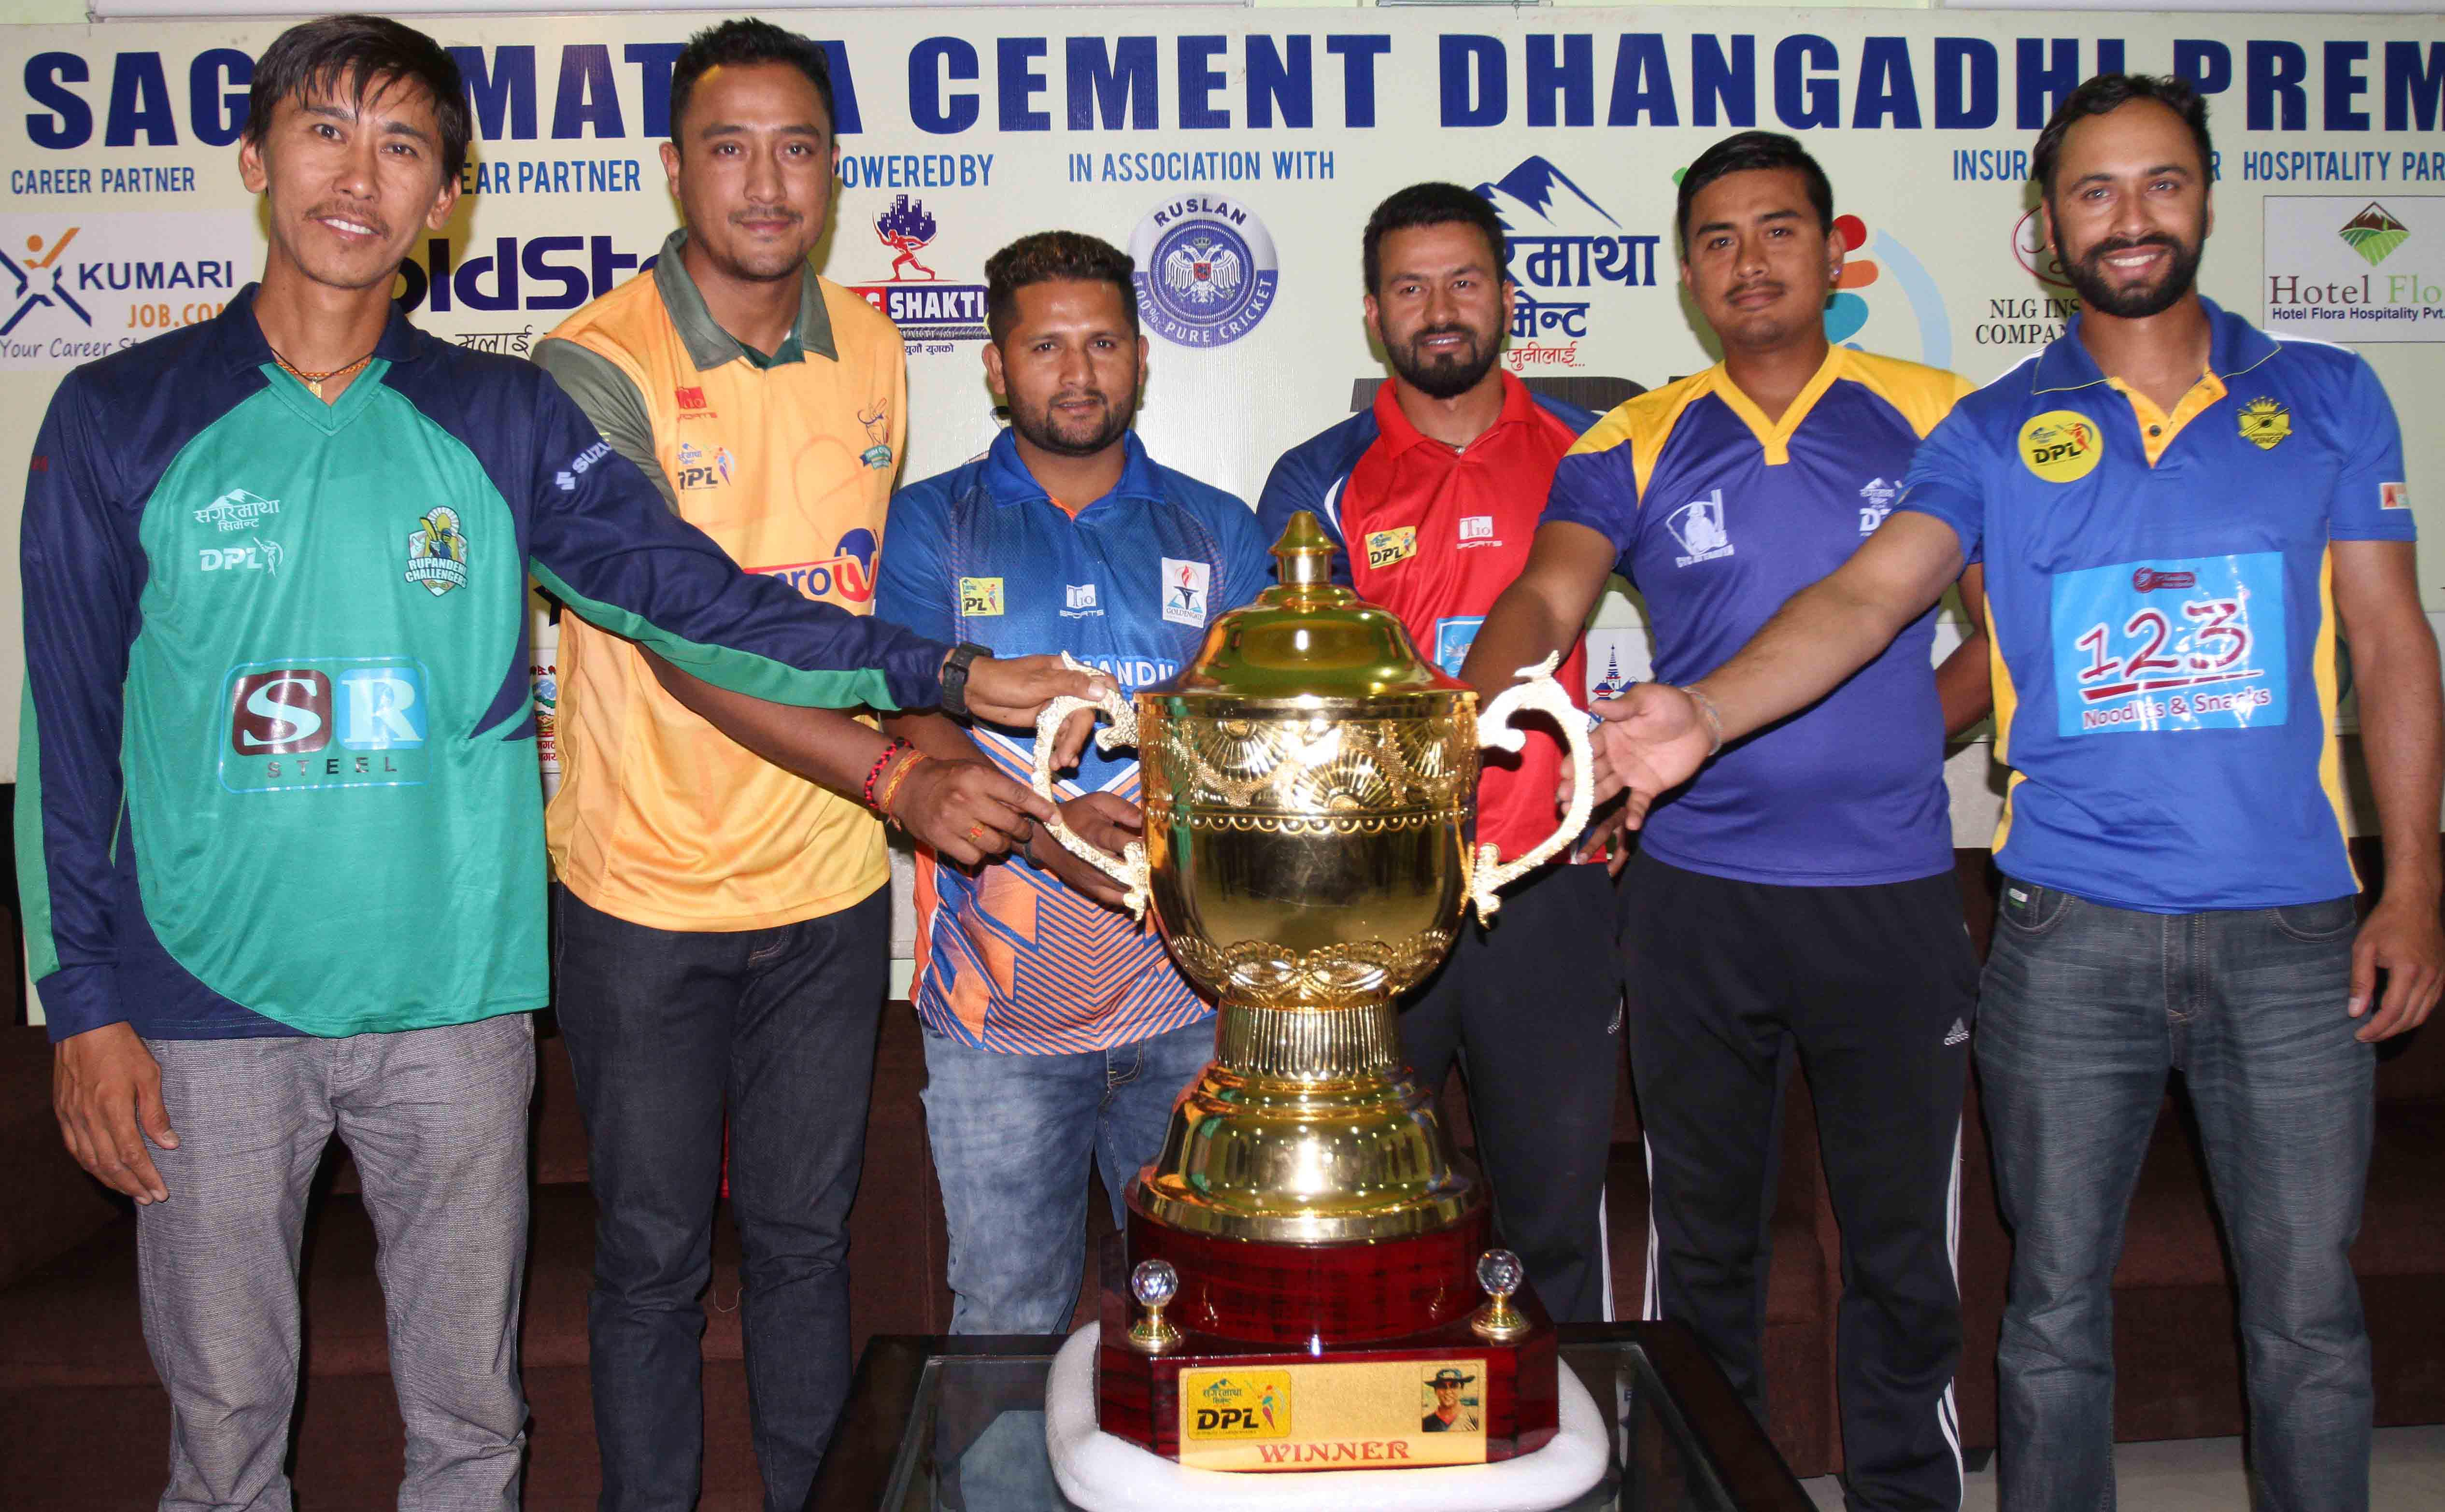 From left skippers Shakti Prasad Gauchan, Paras Khadka, Basanta Regmi, Binod Bhandari, Gyanenedra Malla and Sharad Vesawkar pose for group photo  after unveiling winner's trophy during pre-match press meet of DPL Dhangadhi Premier League Cricket Tournament in Dhangadhi, Kailali district, on Saturday, April 8, 2017. Photo: Udipt Singh Chhetry/THT